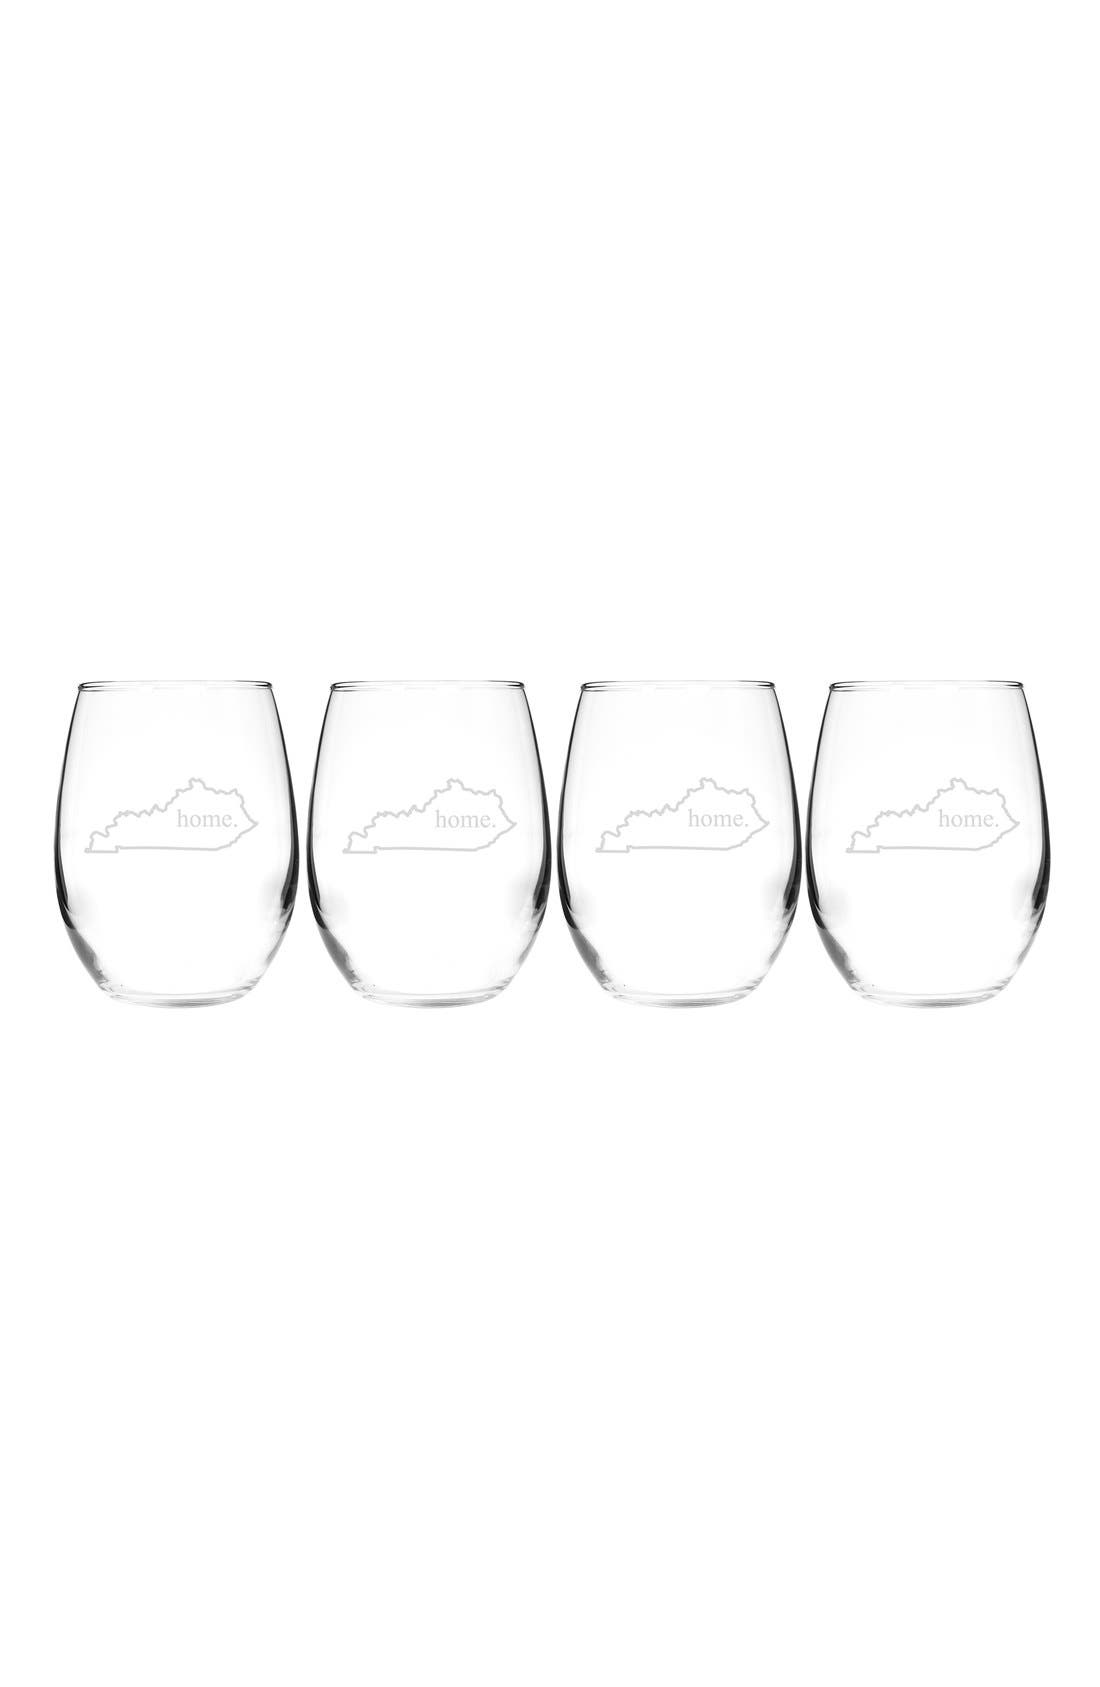 Home State Set of 4 Stemless Wine Glasses,                             Main thumbnail 18, color,